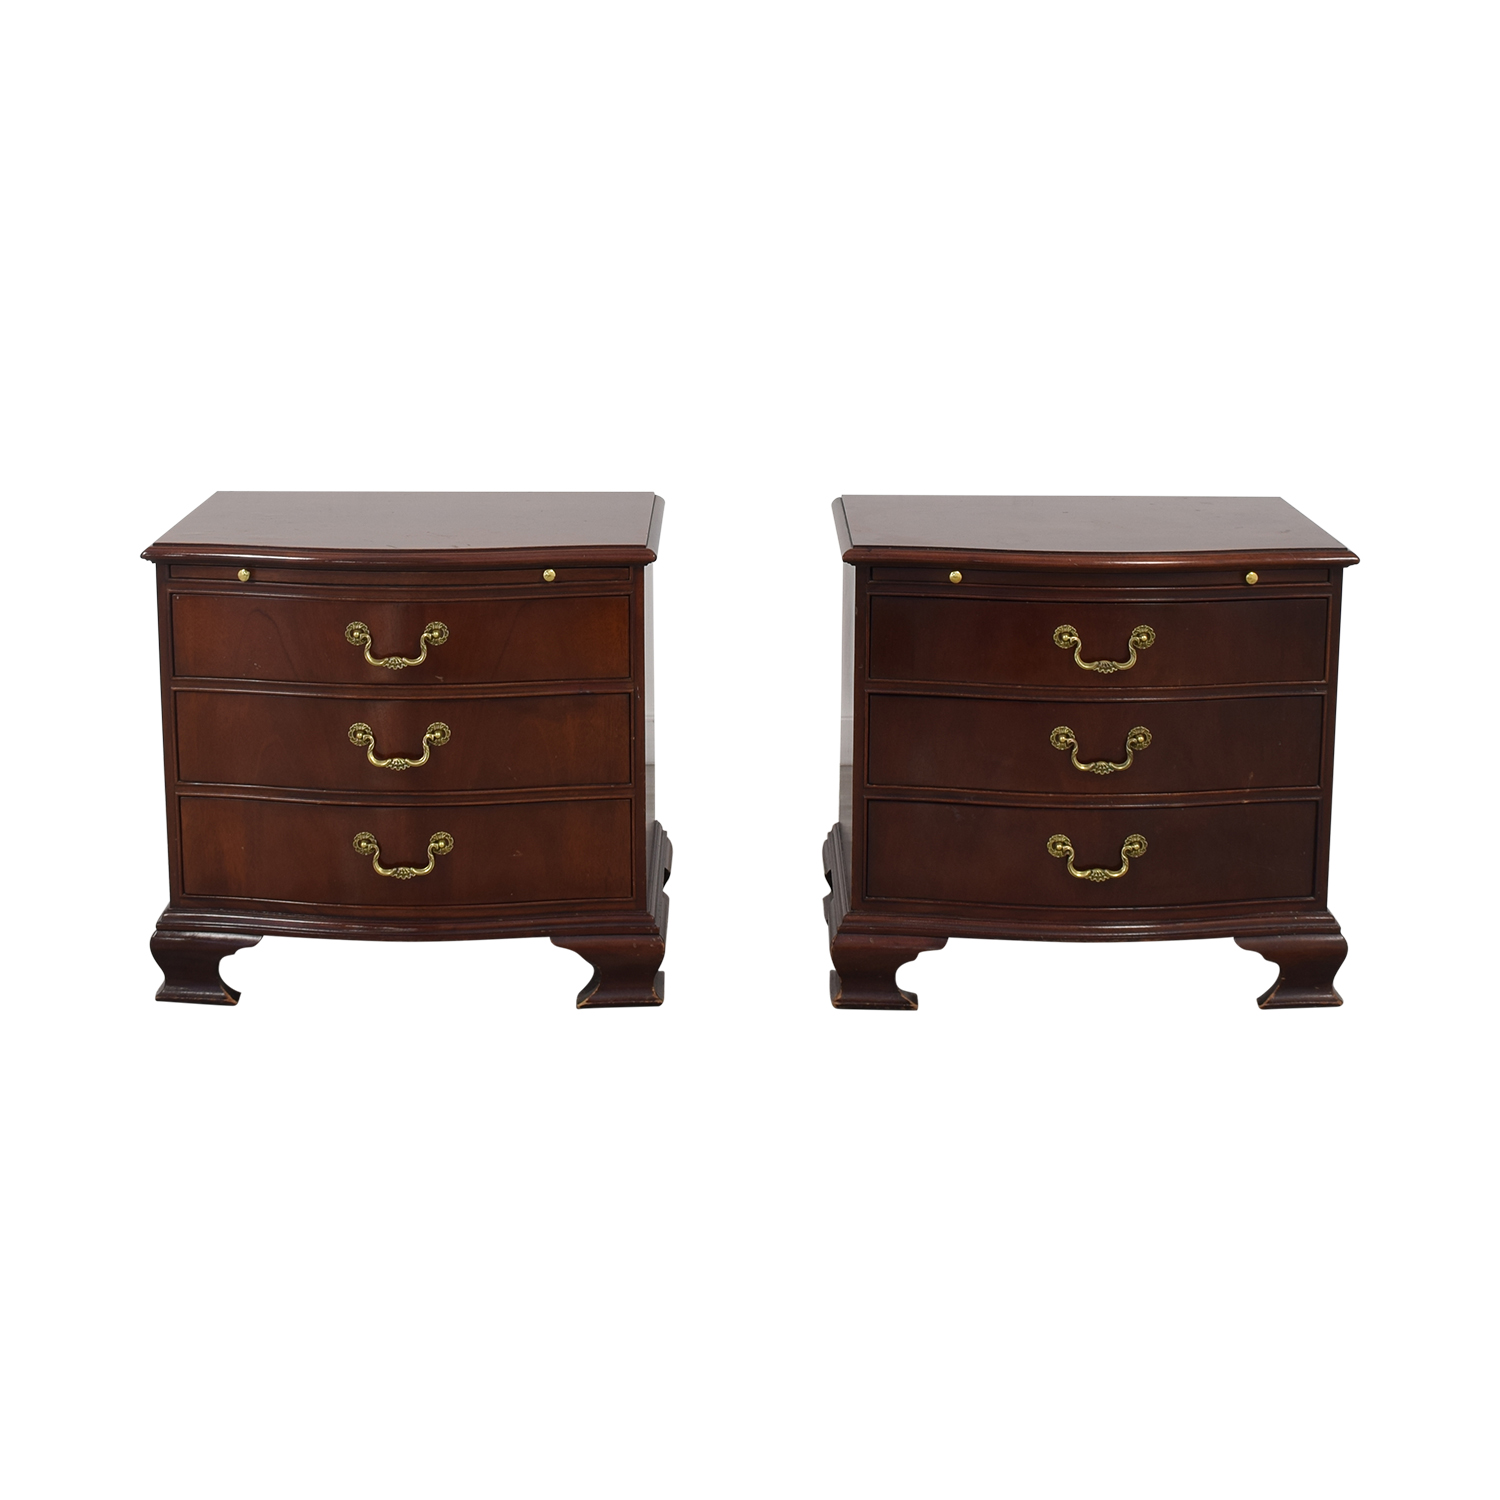 Baker Furniture Baker Furniture Night Stands discount